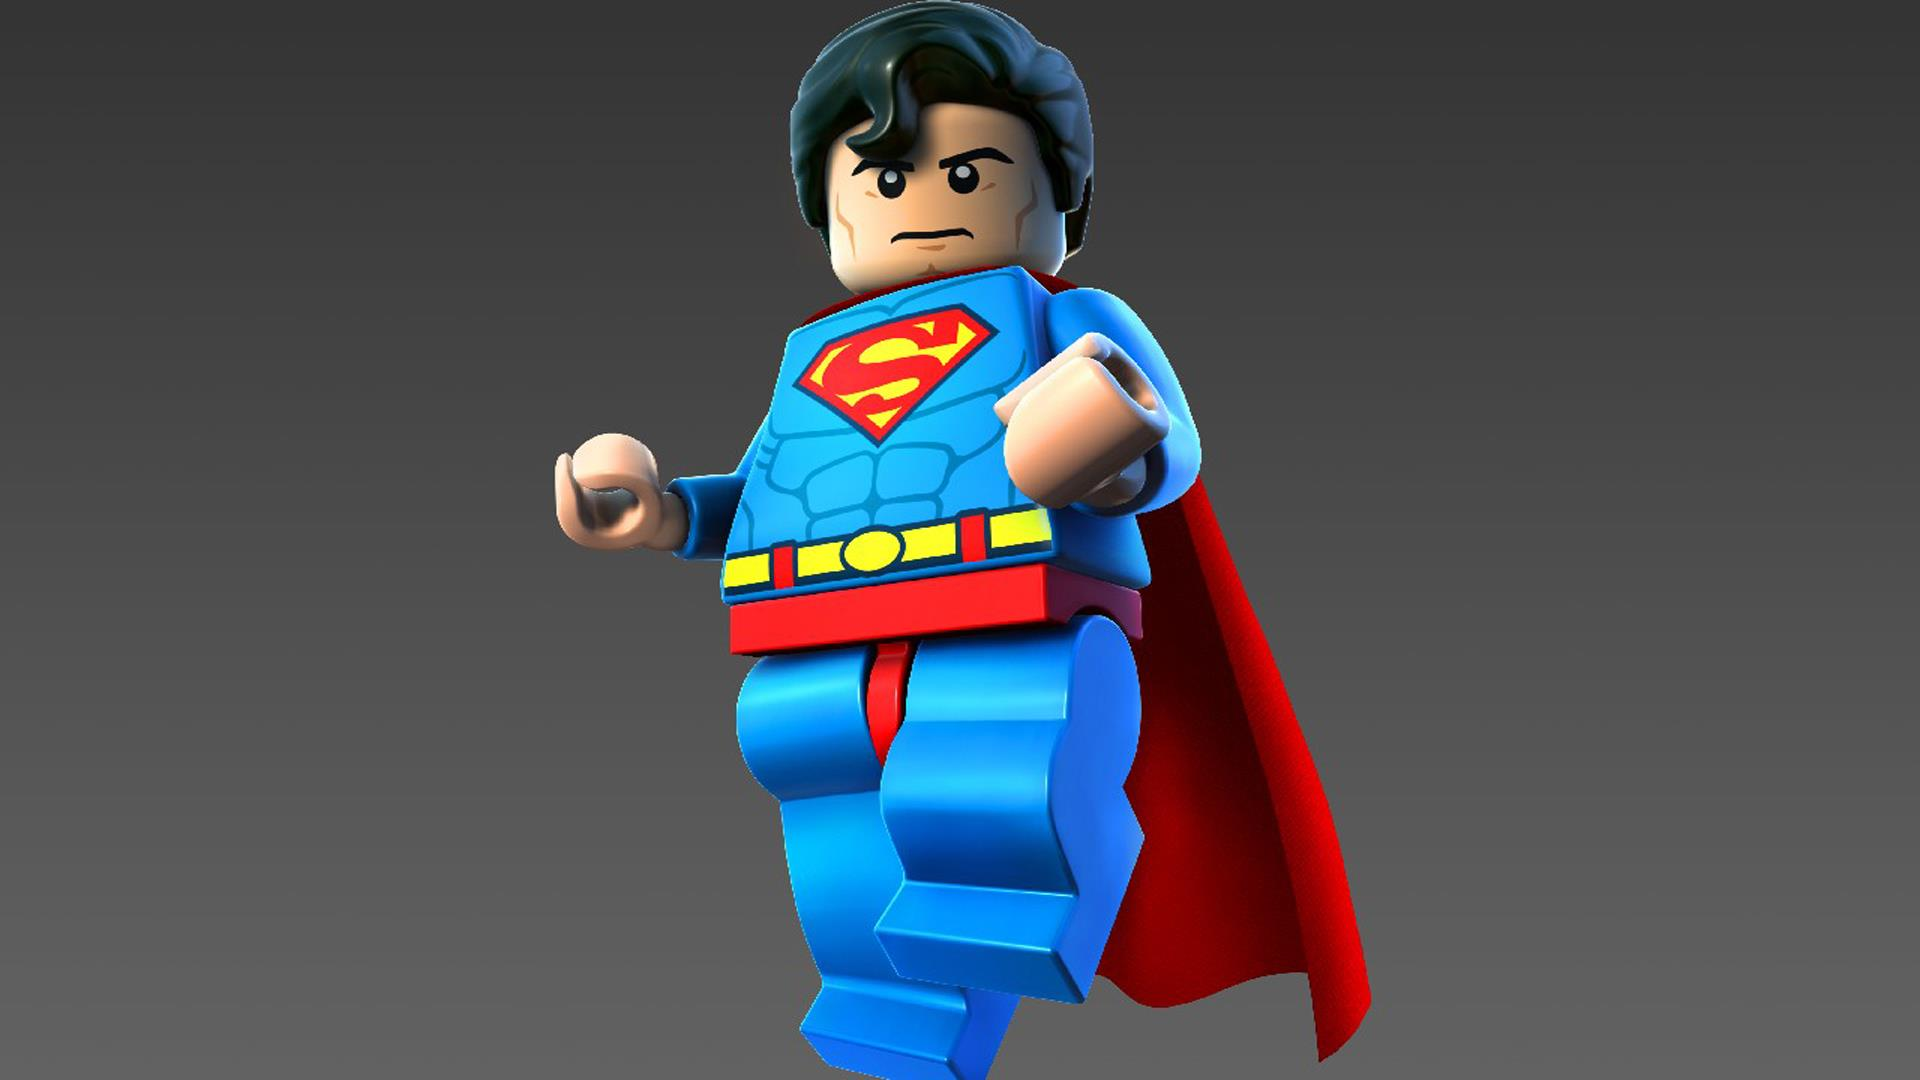 Lego Superman Hd Wallpaper Background Image 1920x1080 Id